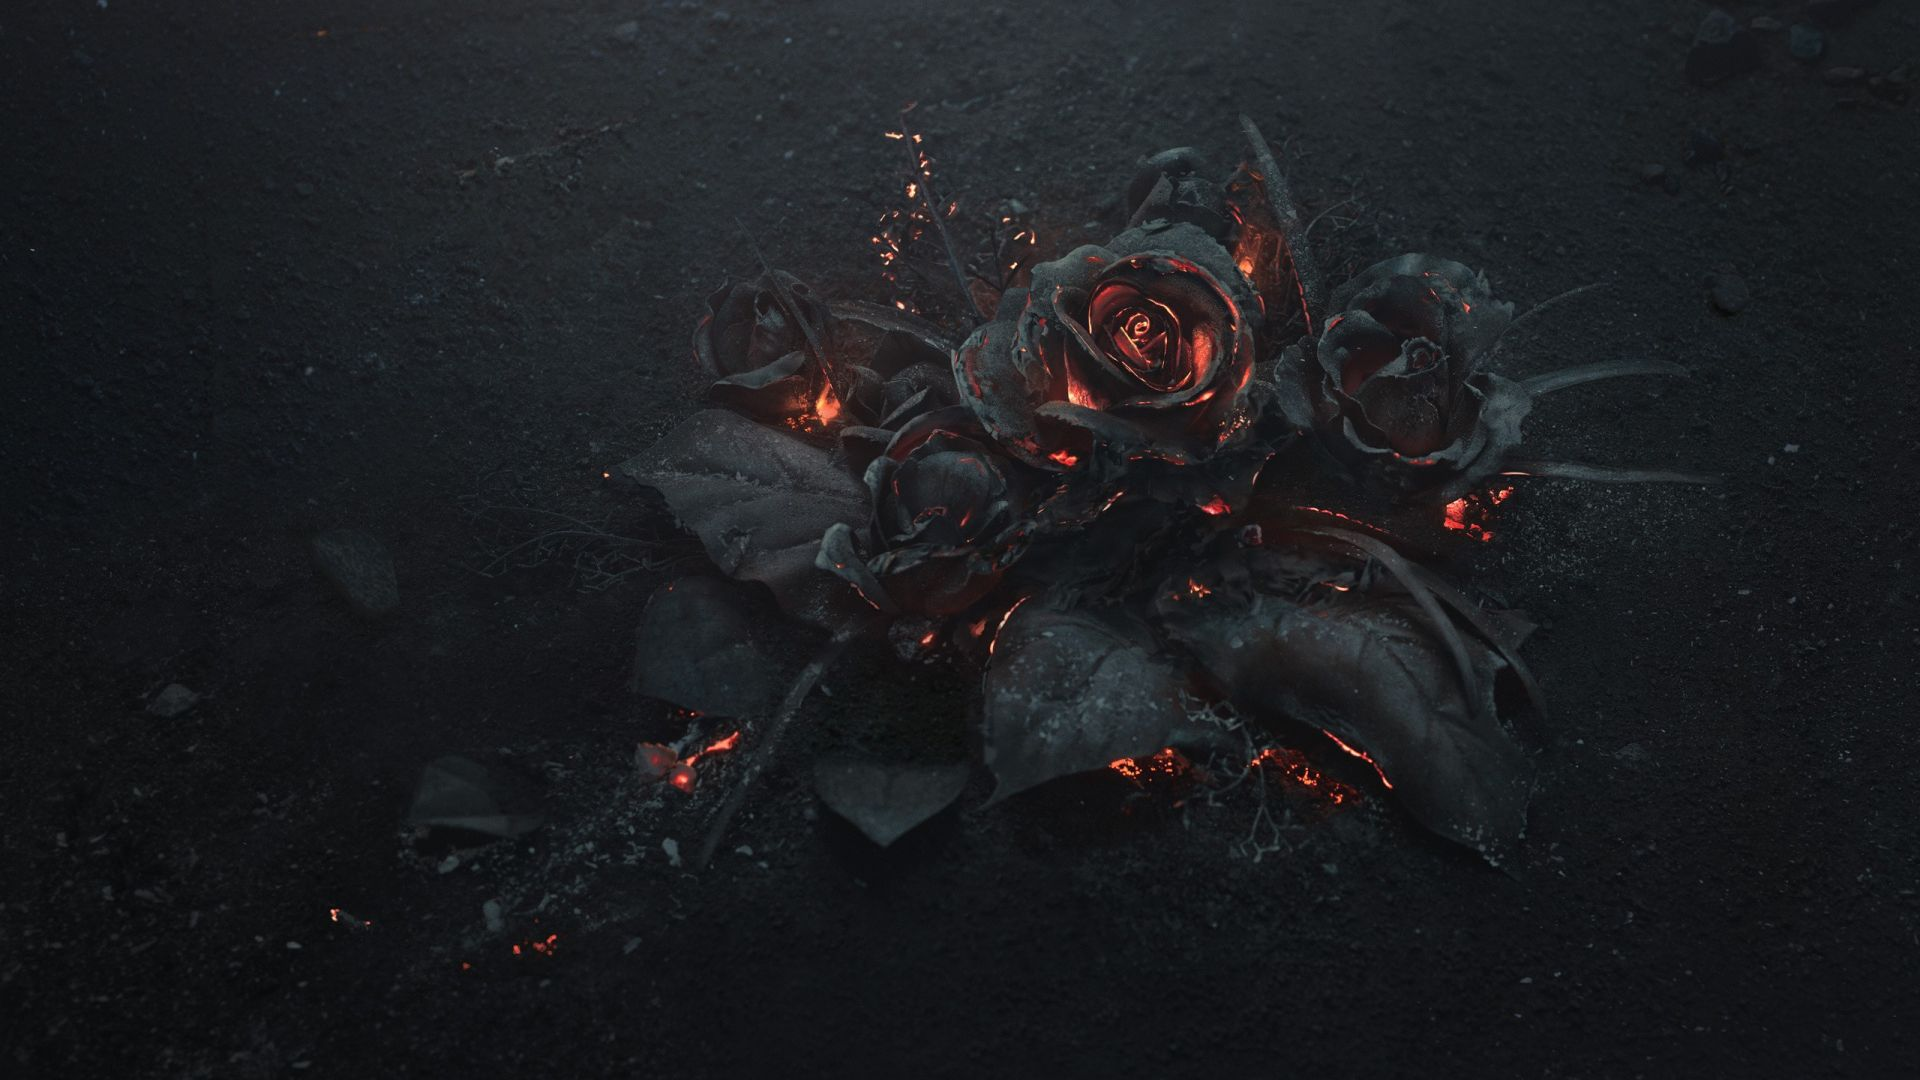 black rose wallpaper hd